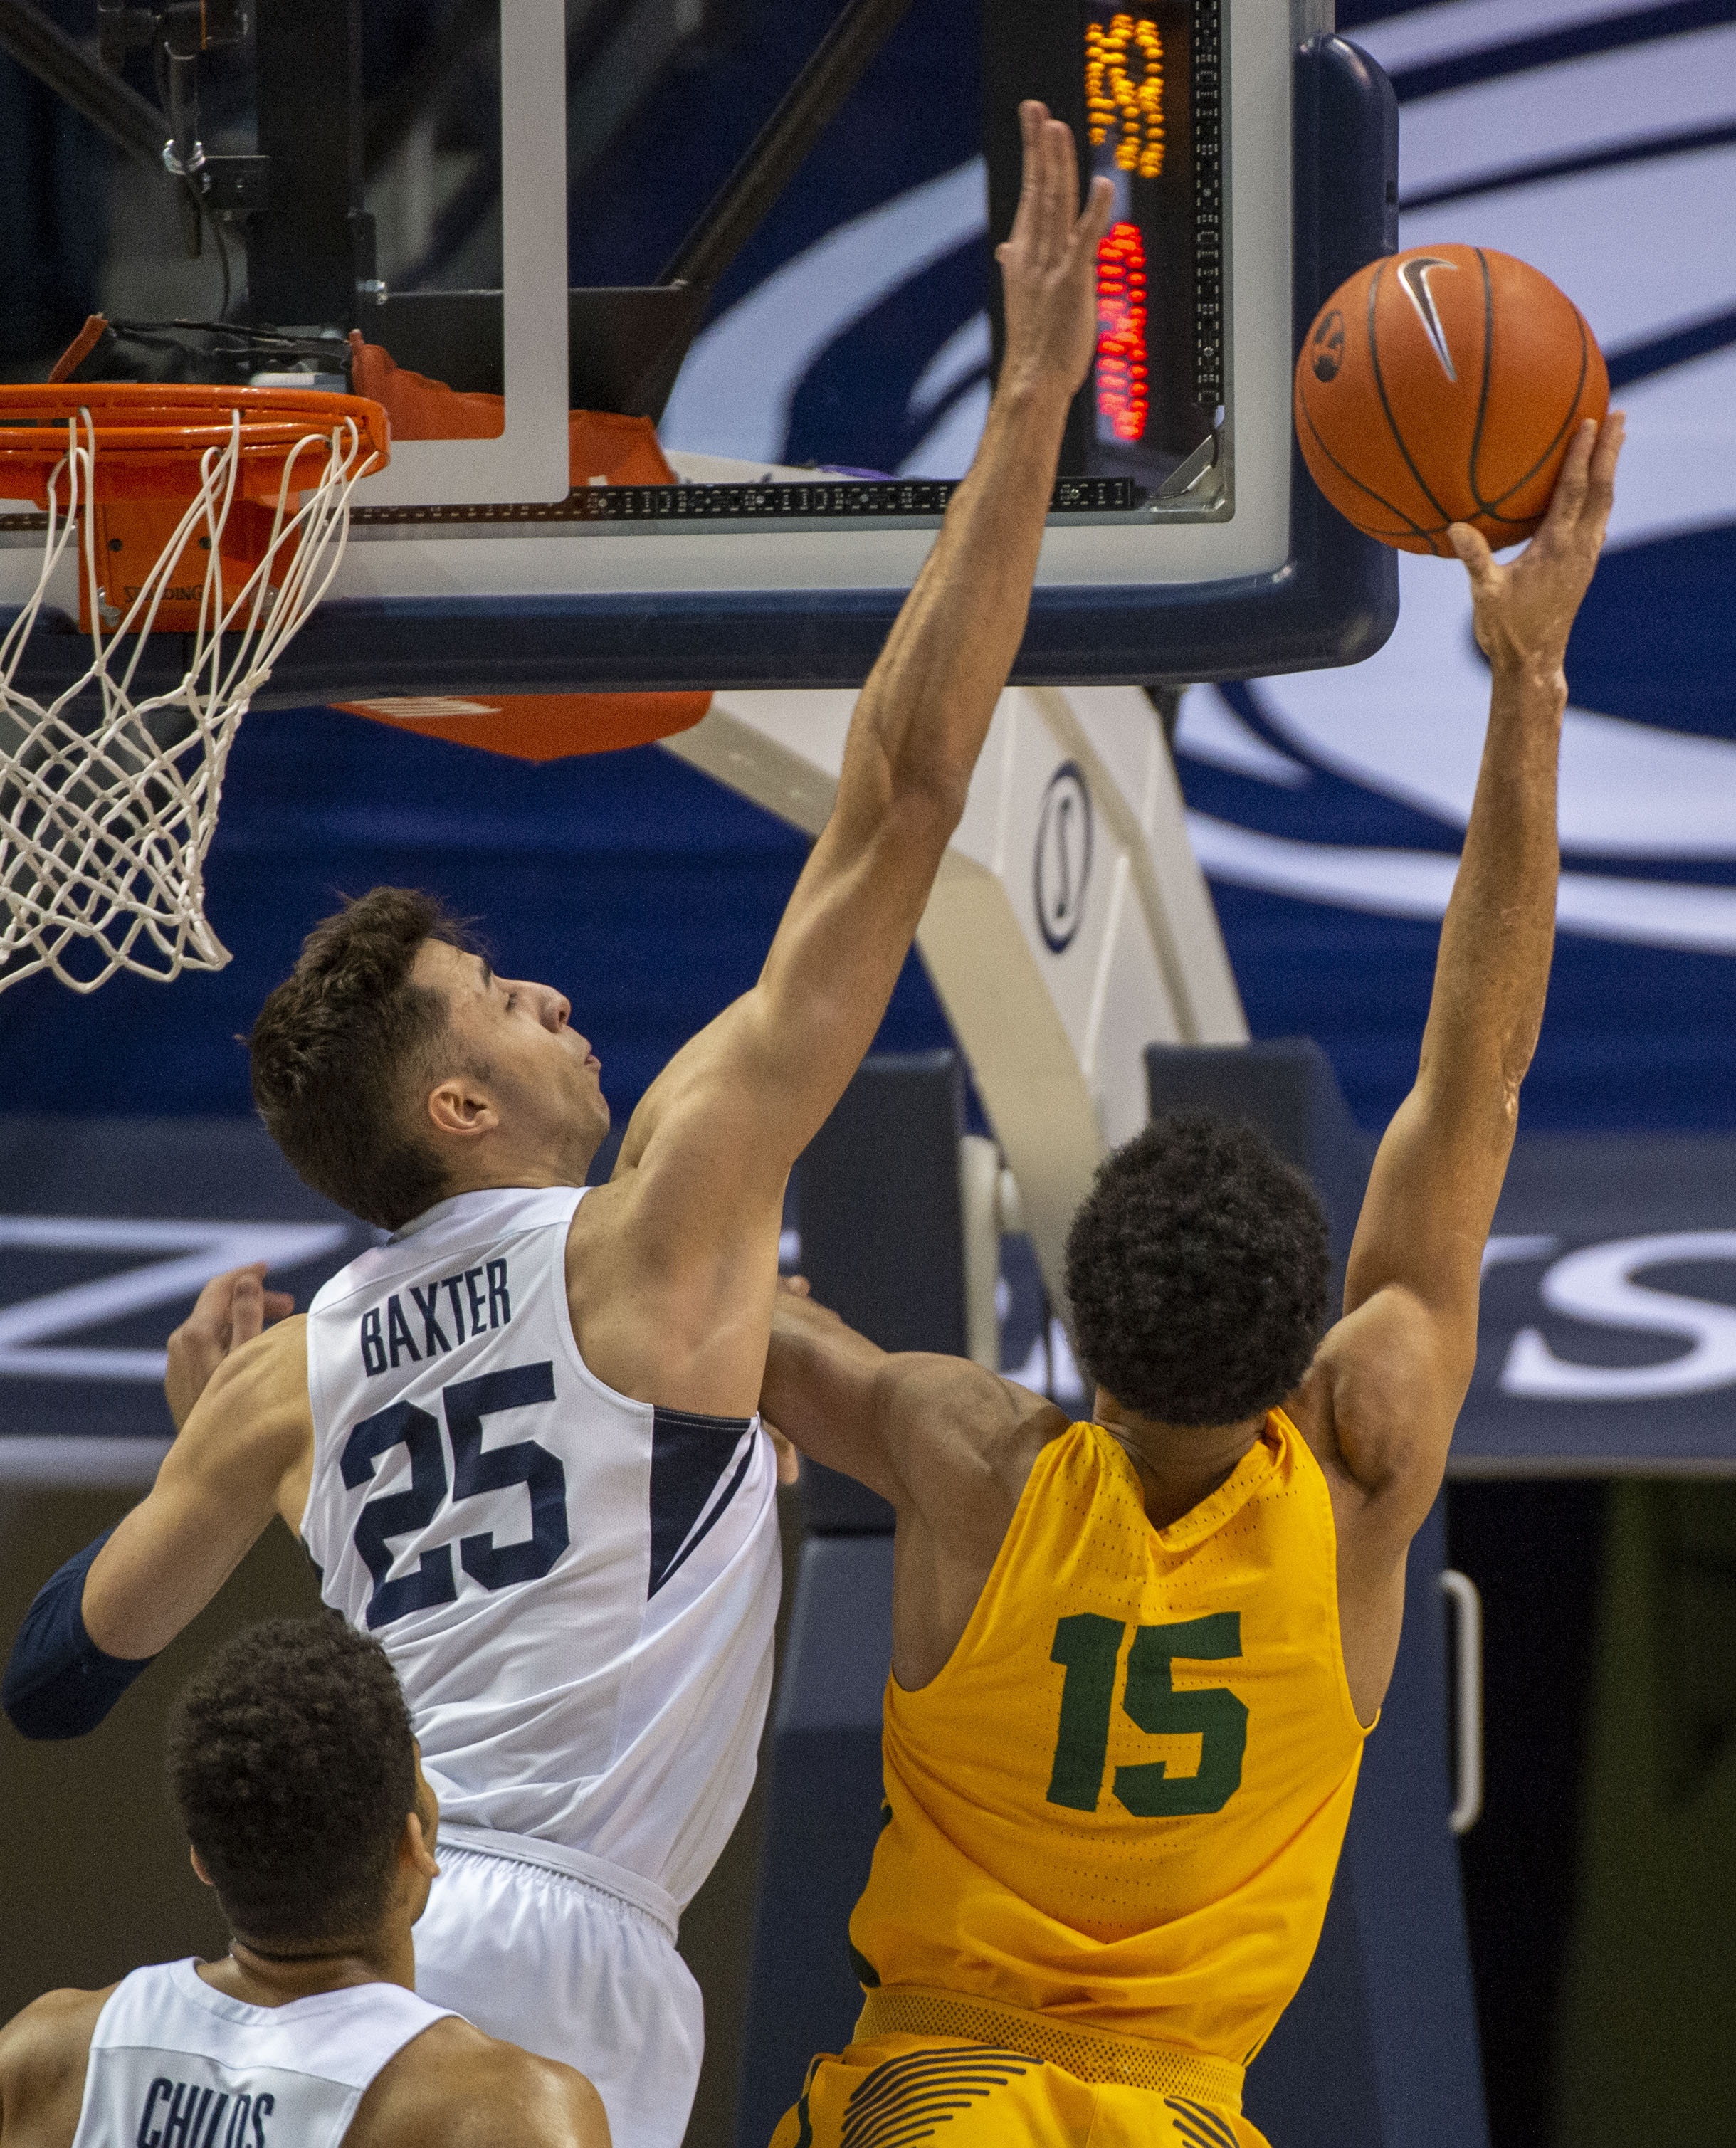 (Rick Egan  |  The Salt Lake Tribune)      San Francisco Dons forward Nate Renfro (15) shoots overBrigham Young Cougars forward Gavin Baxter (25), in WCC basketball action at the Marriott Center, Thursday, February 21, 2018.